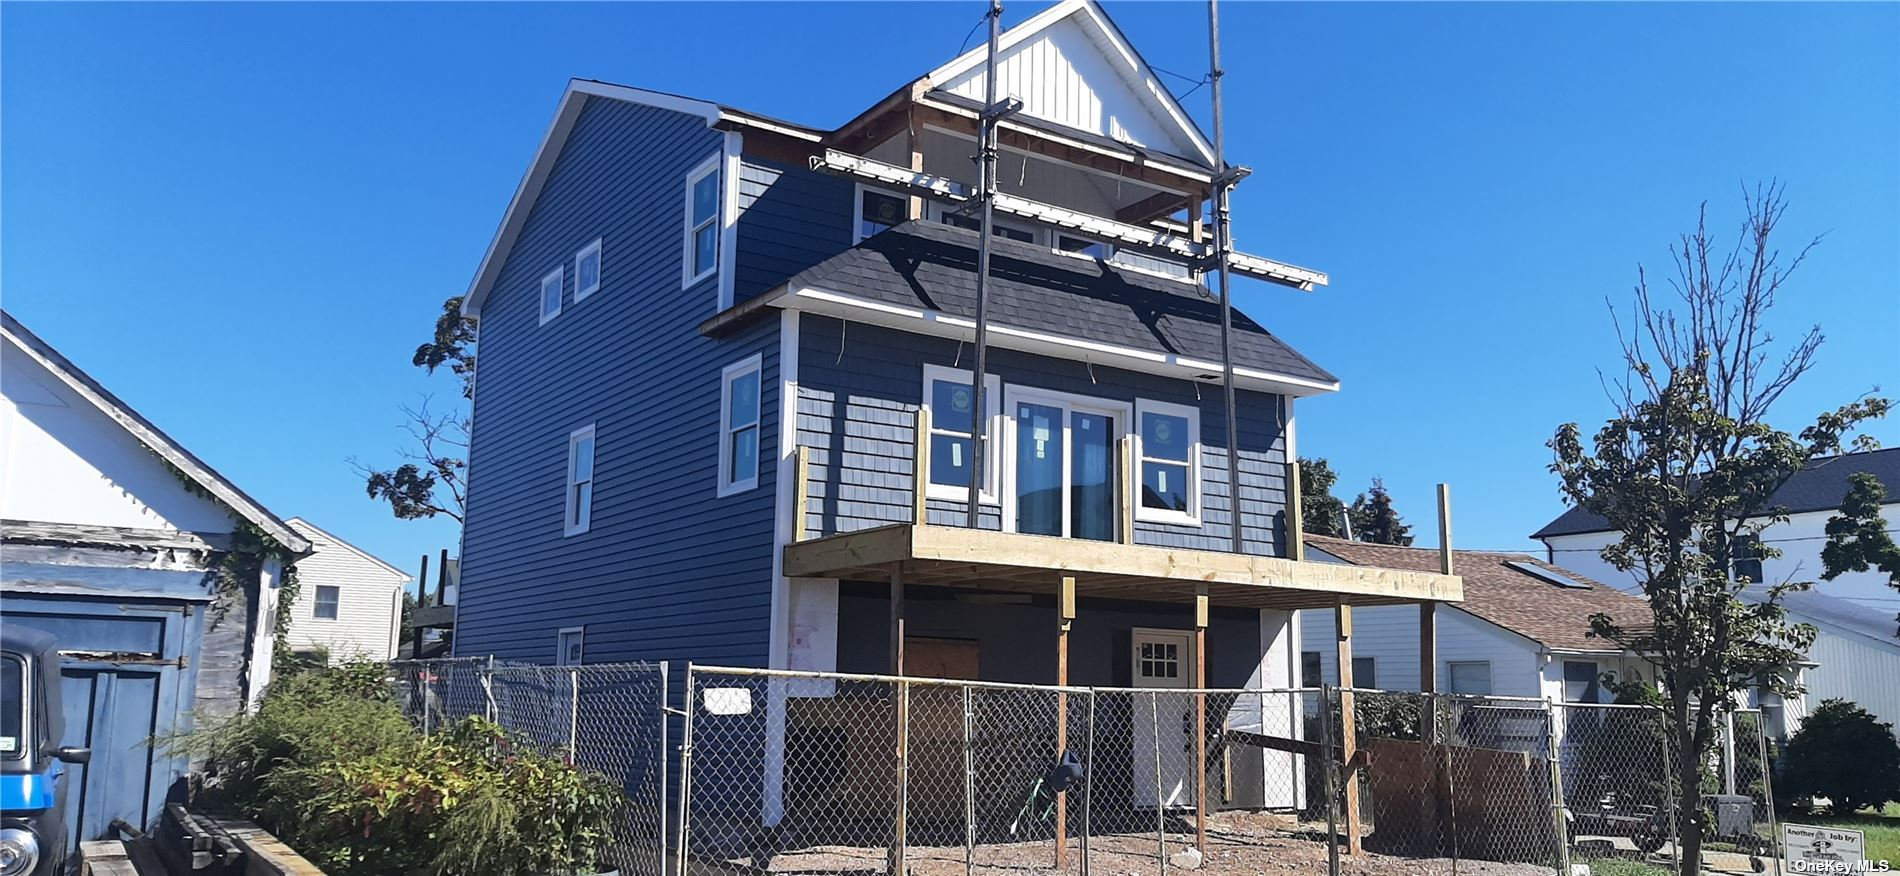 ***Still Under Construction*** Practically brand new FEMA compliant(low flood)!! 2 story with lower Garage level. Complete gut renovation. New Plumbing/Electric. Open concept with hardwood floors. Stone counters SS appliances. 3 Decks. Canal Water View!!